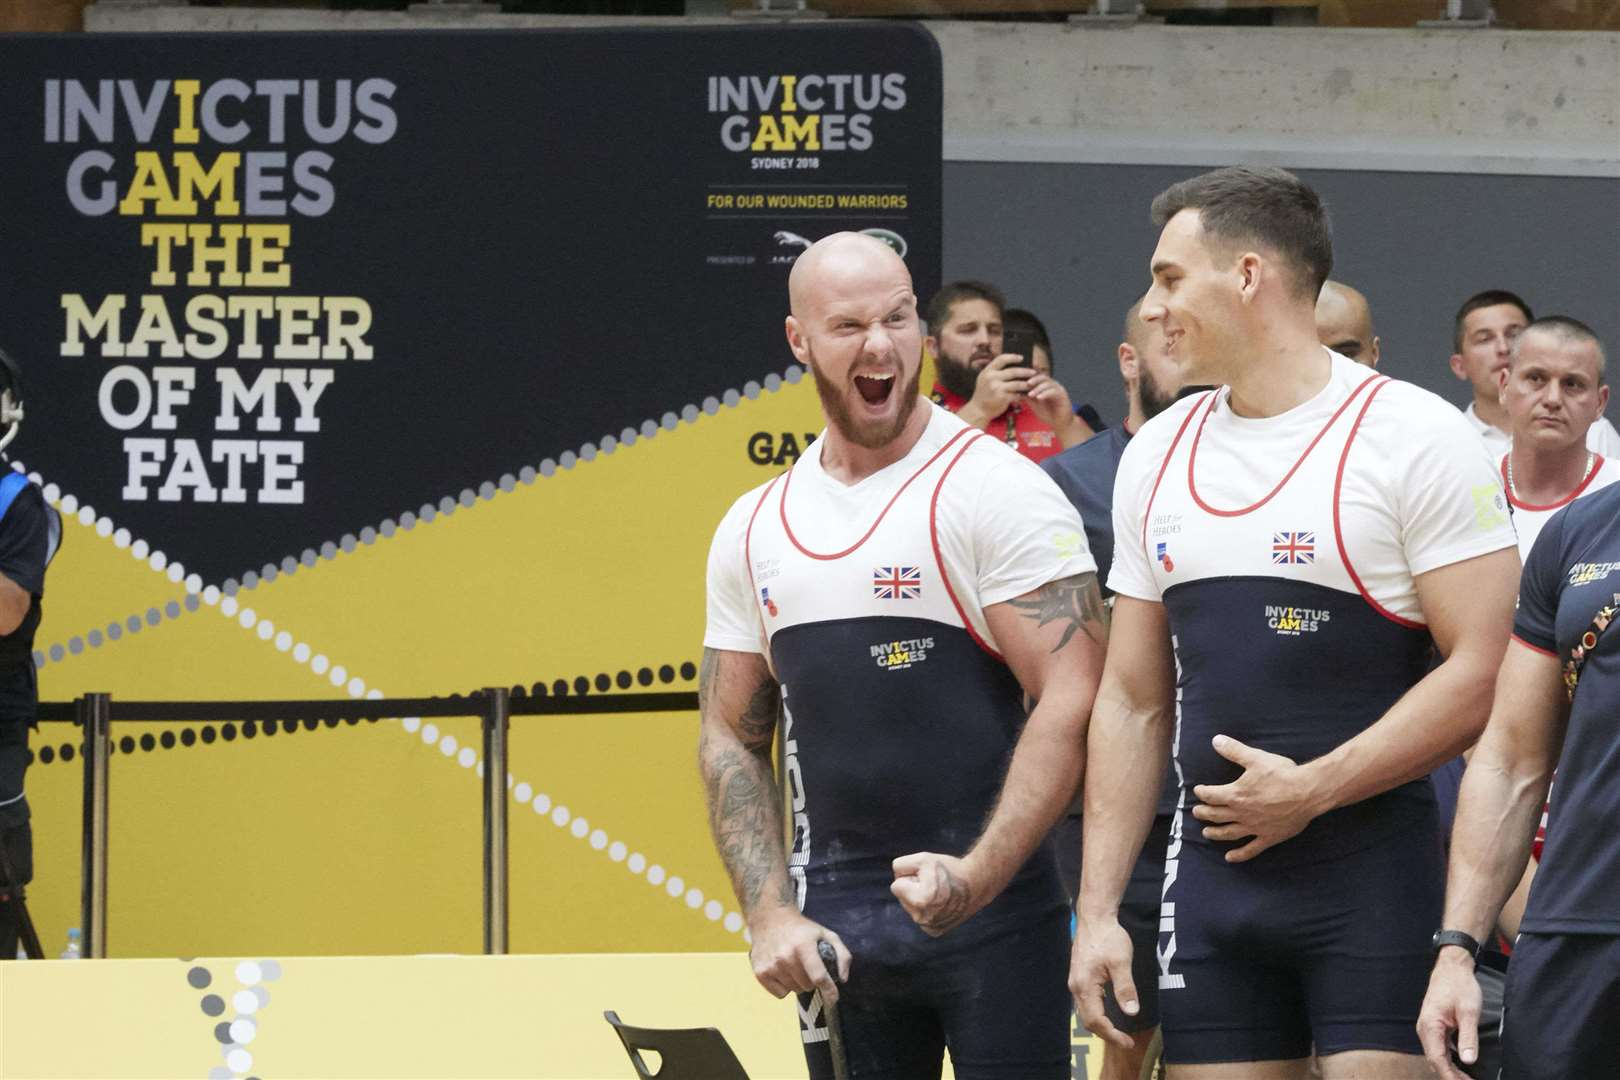 Matt Tate pleased with his competition PB of 132kg in the Midweight category at the 2018 Invictus Games. Picture: COntributed (5147090)